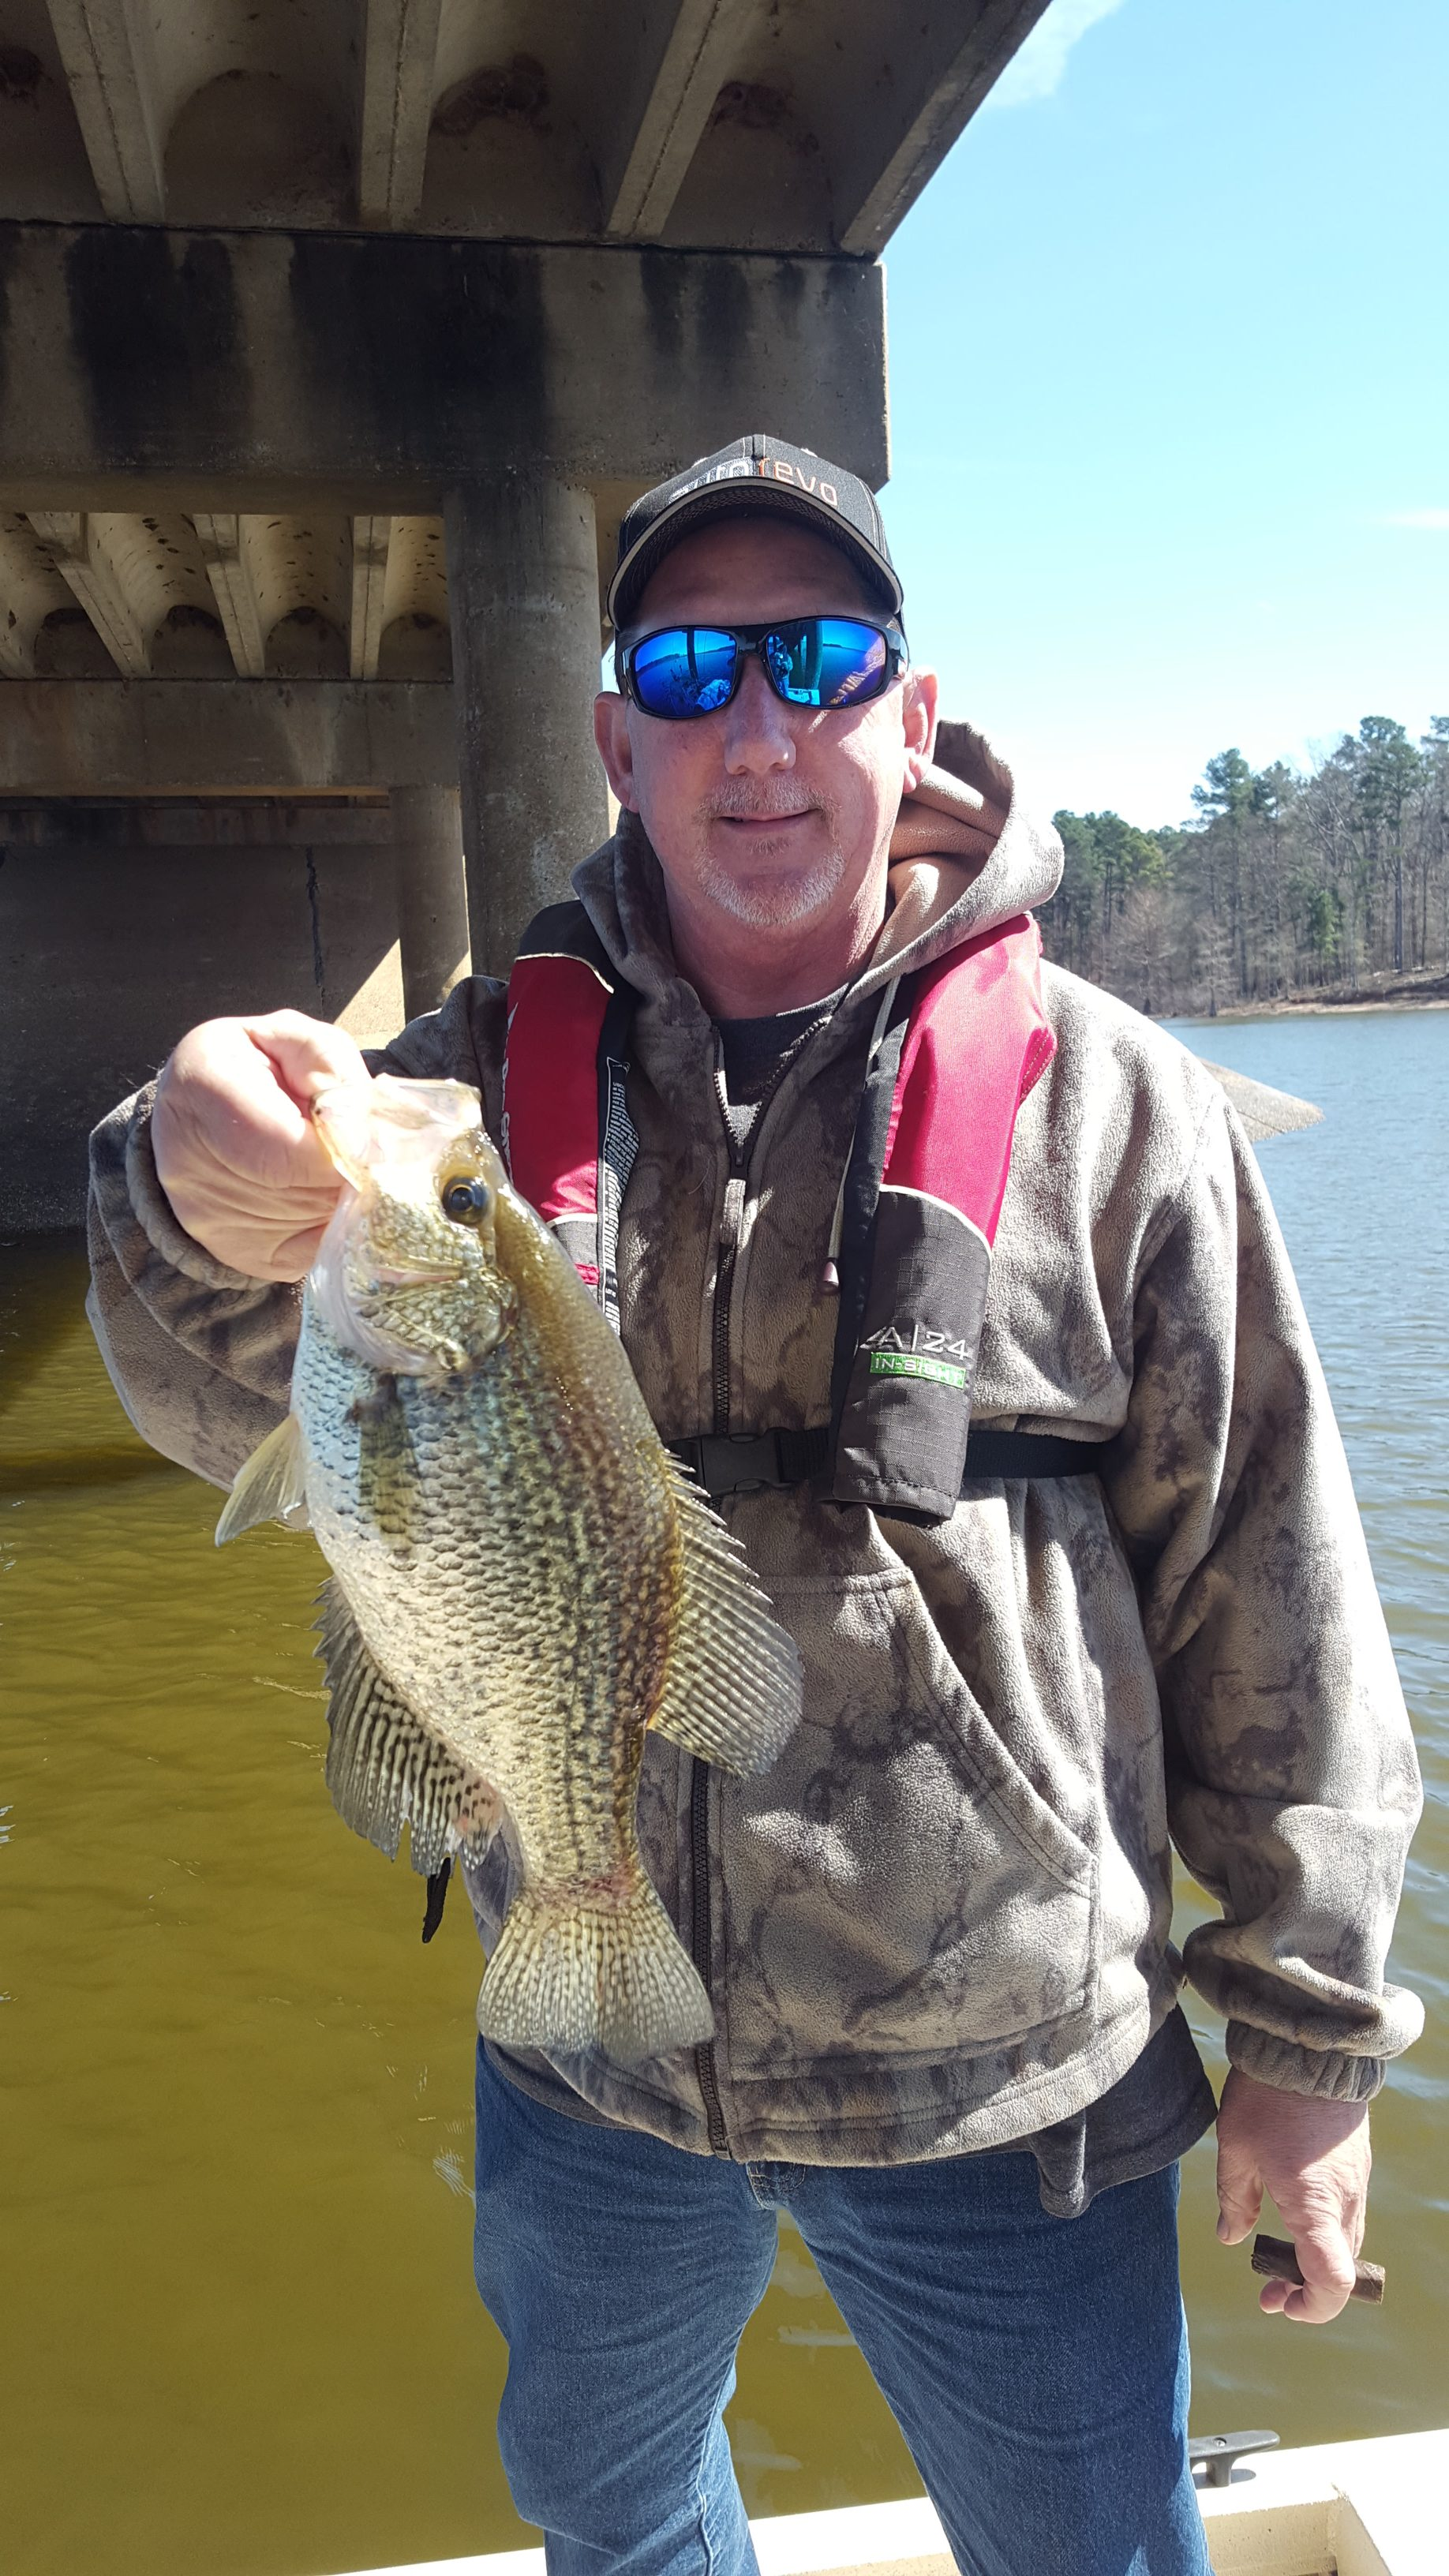 Pine cove cabin vacation rental on lake o the pines texas for Lake of the pines fishing report